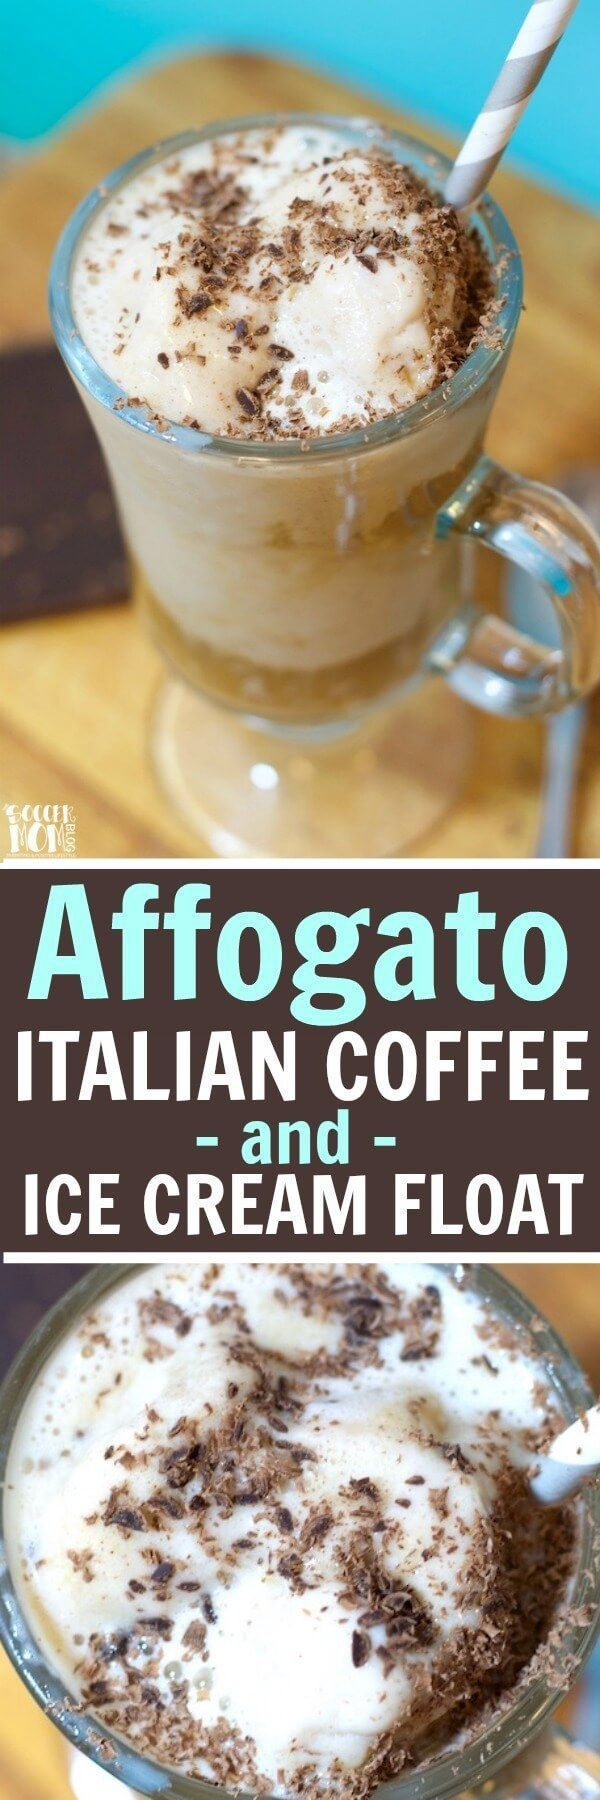 "The word affogato literally means ""drowned"" in Italian — Easy, 3 ingredient classic ice cream and coffee dessert. It's a coffee-lover's dream come true!!"